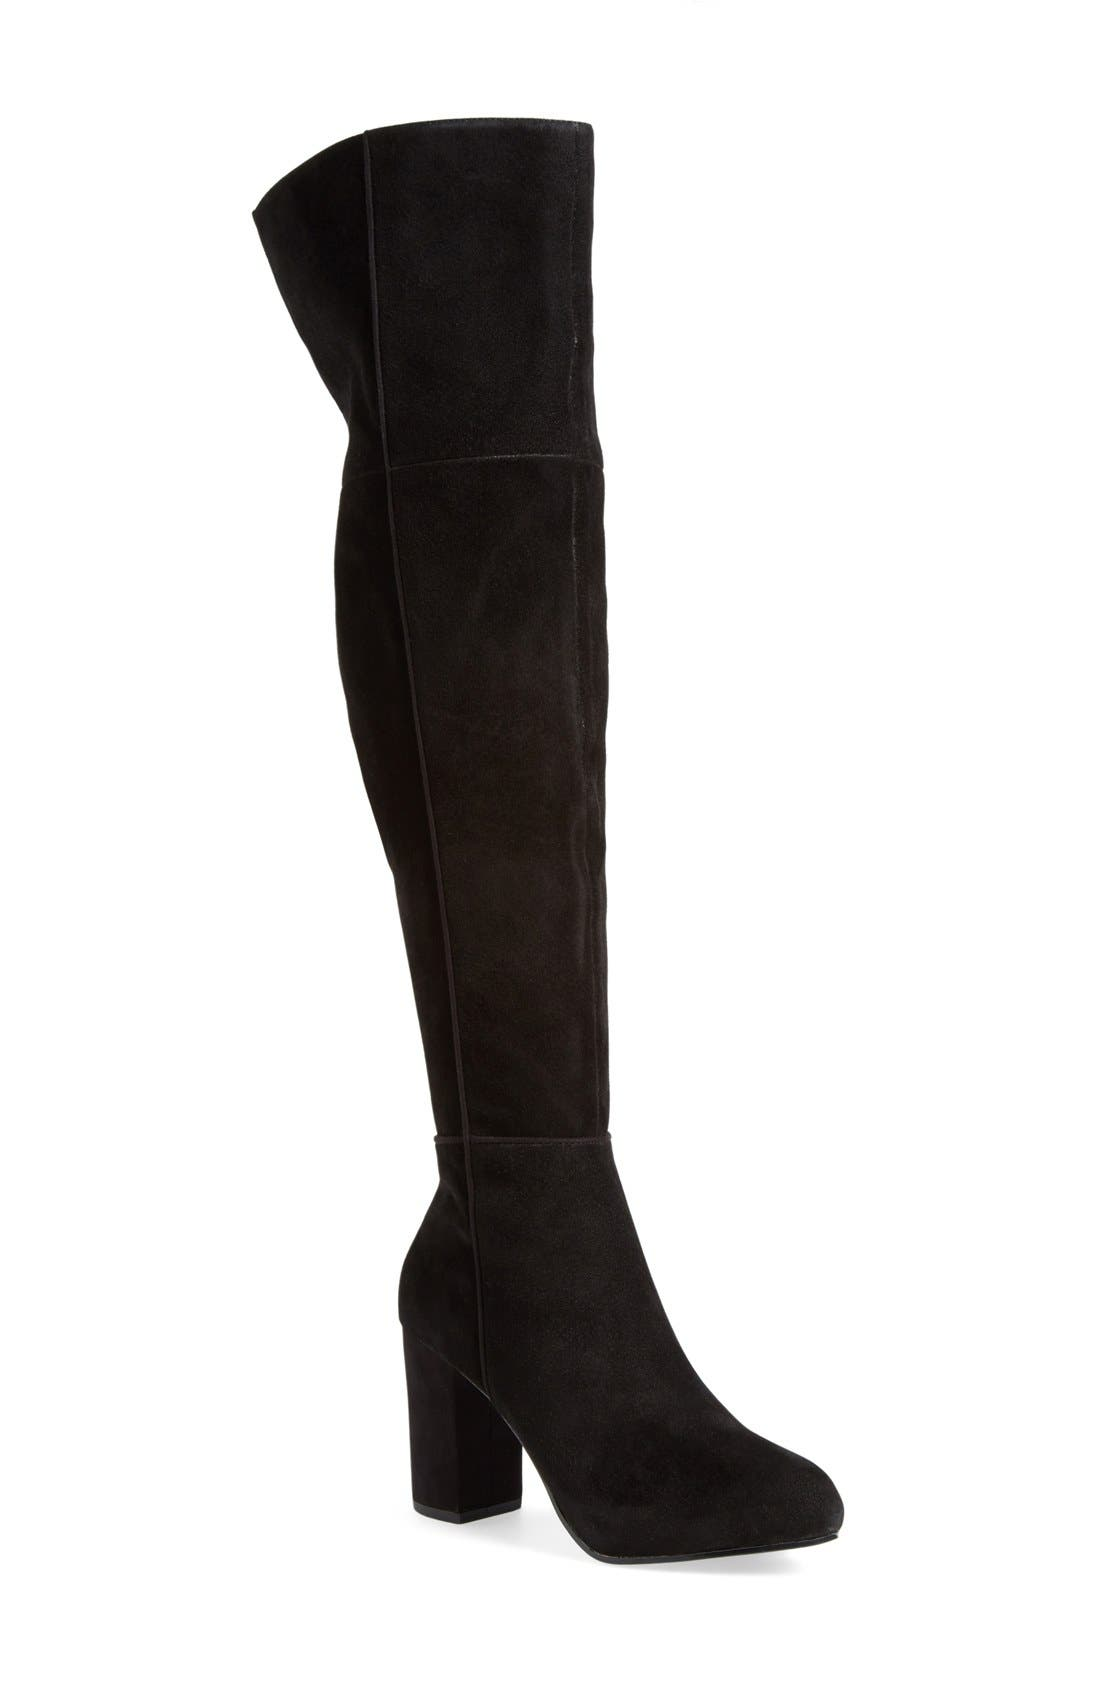 Alternate Image 1 Selected - Topshop 'Count' Over the Knee Boot (Women)